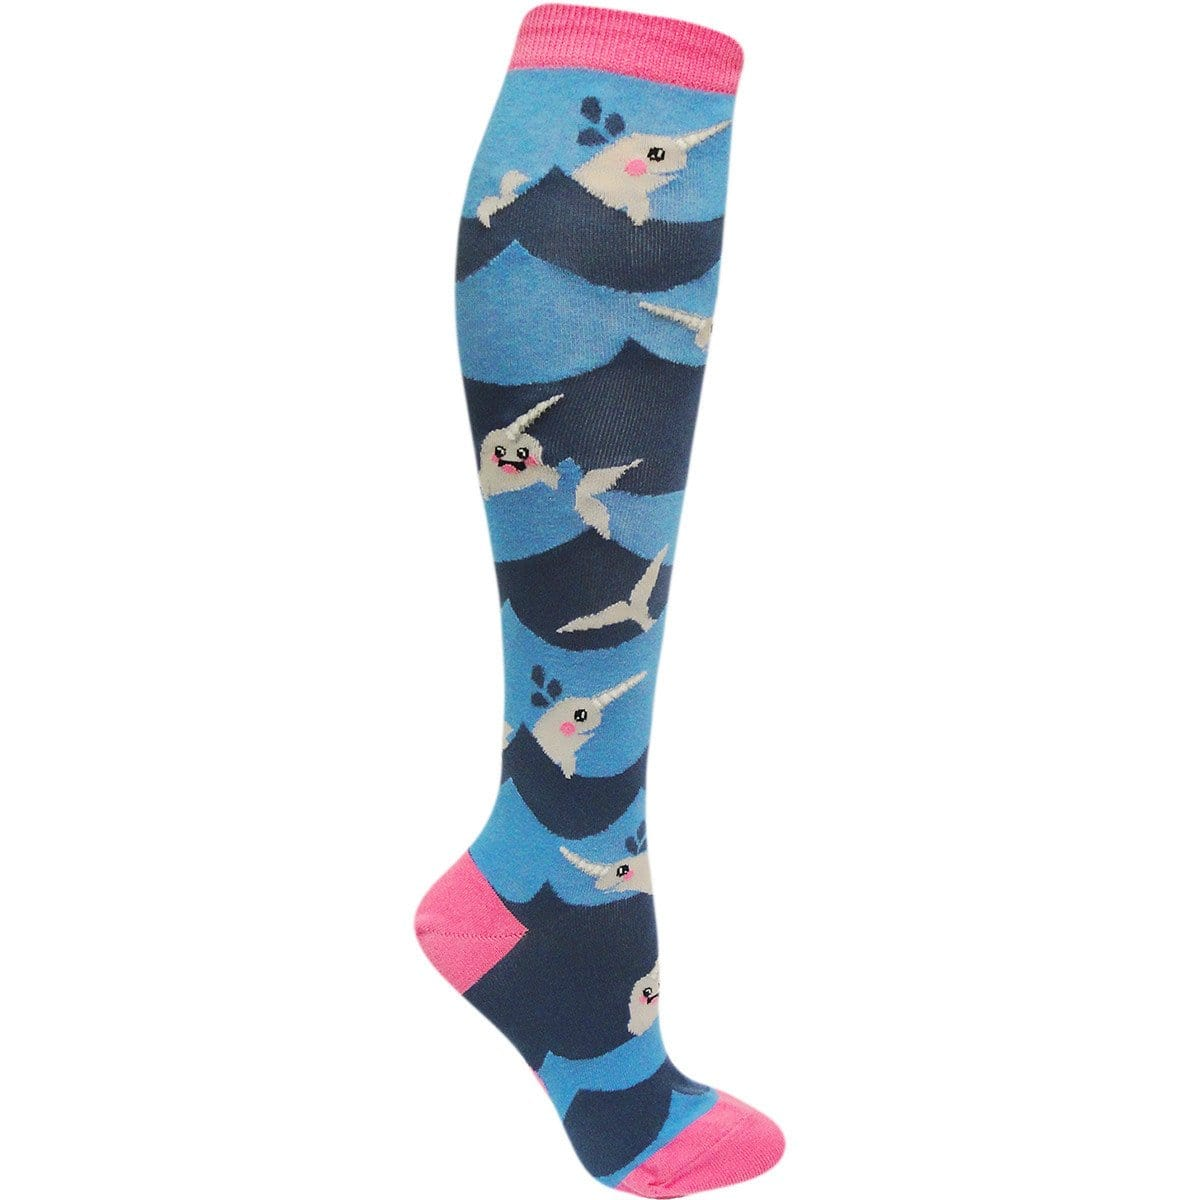 e3eb7b022e34c Lil' Narwhal Knee High Socks